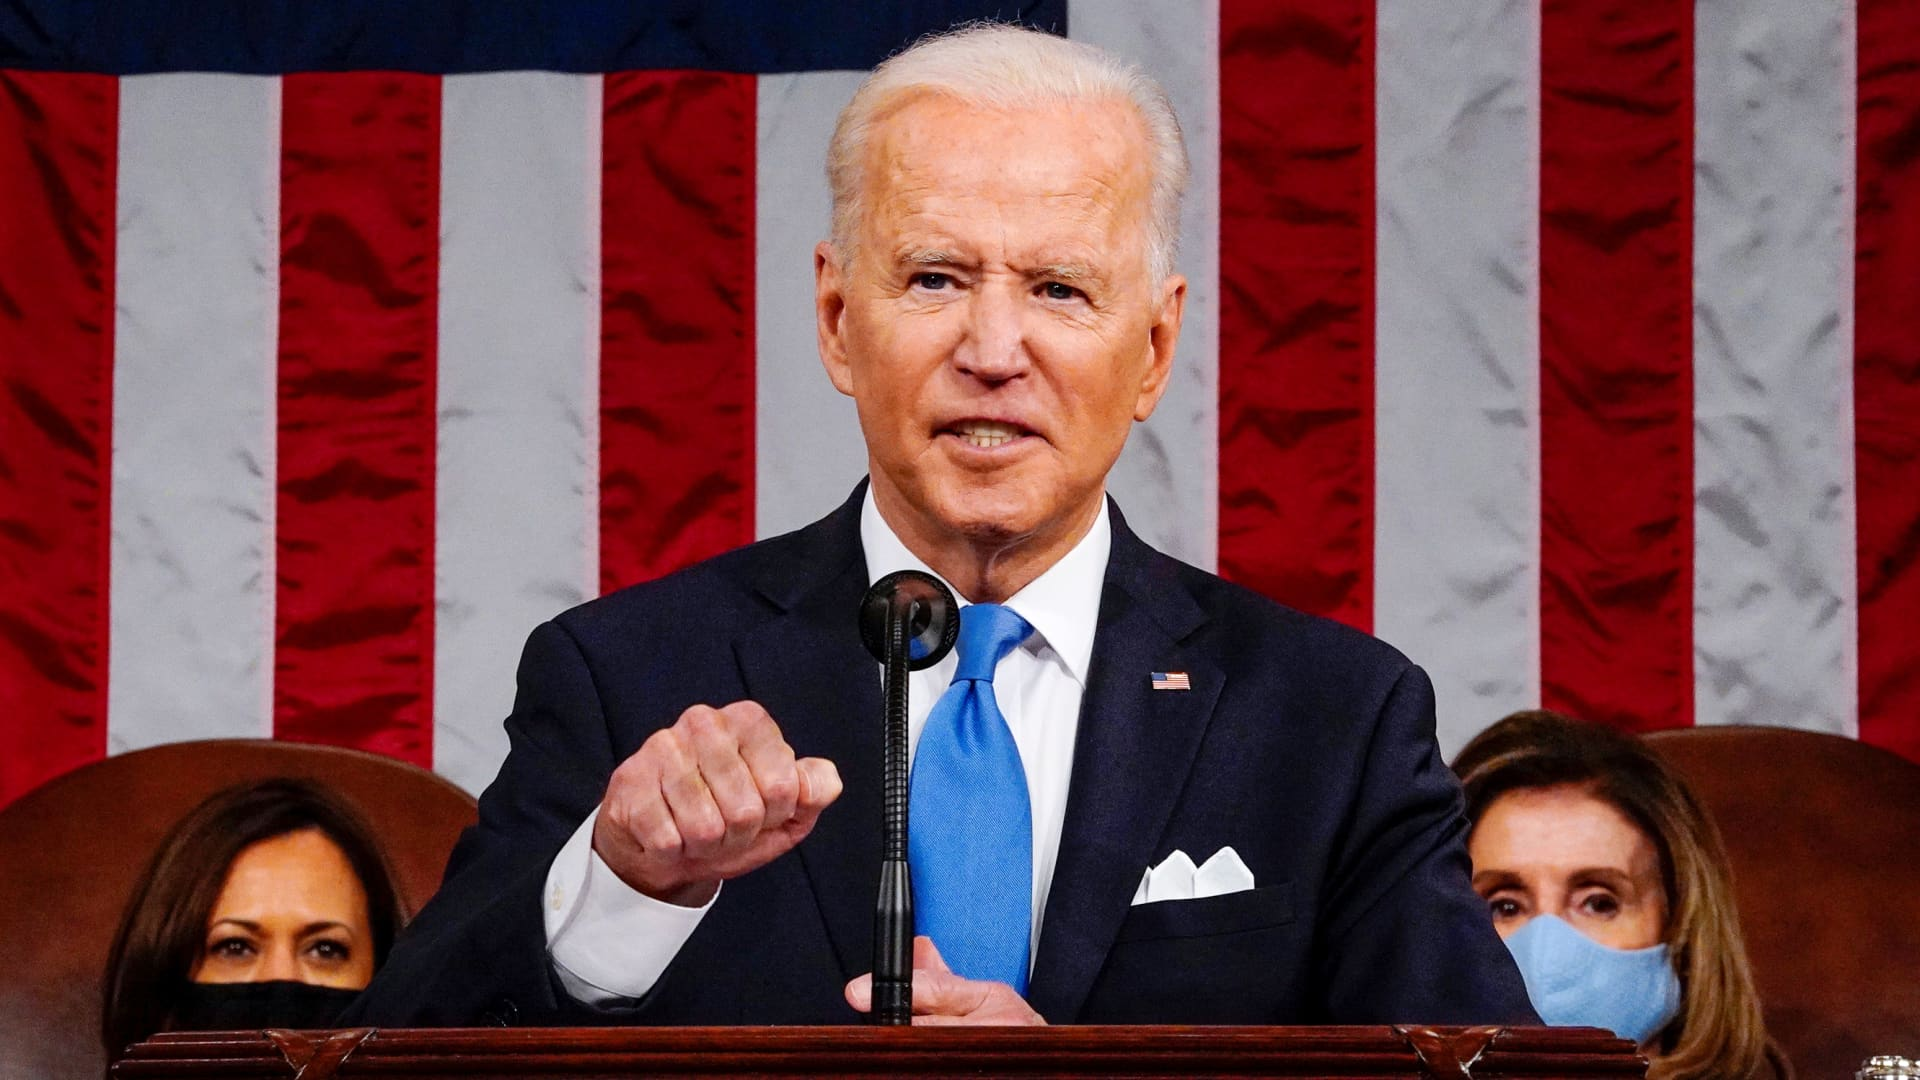 President Joe Biden addresses to a joint session of Congress in the House chamber of the U.S. Capitol in Washington, U.S., April 28, 2021.